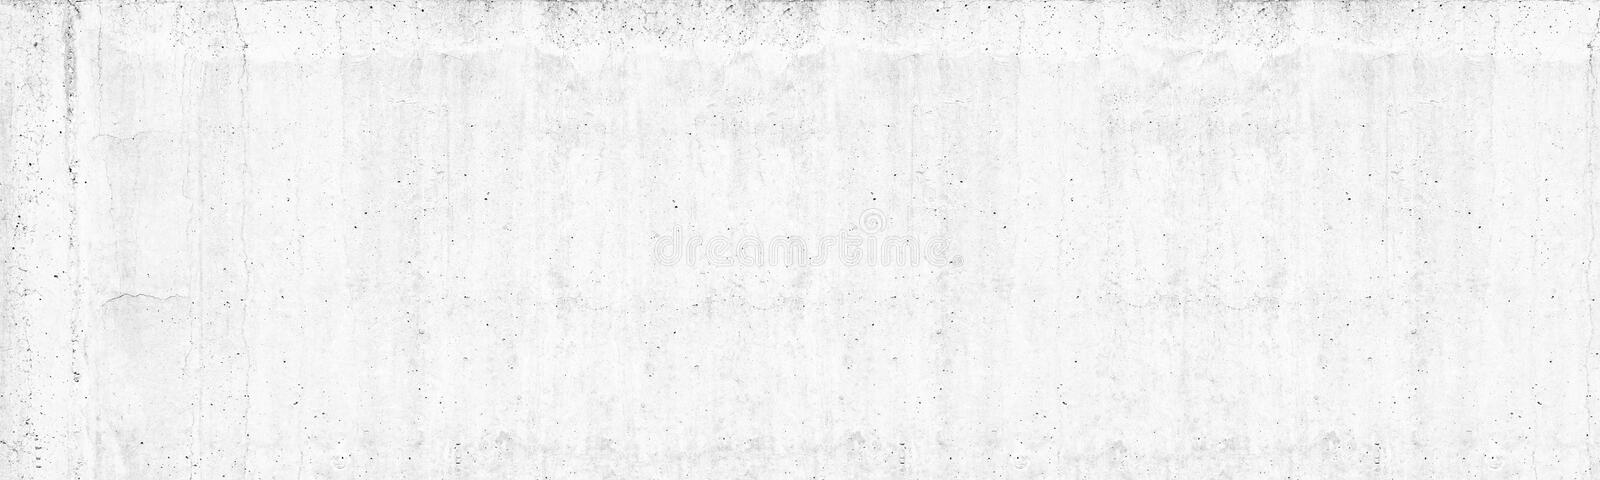 Old white concrete wall wide texture. Rough light gray cement surface panorama. Whitewashed panoramic background royalty free stock photos